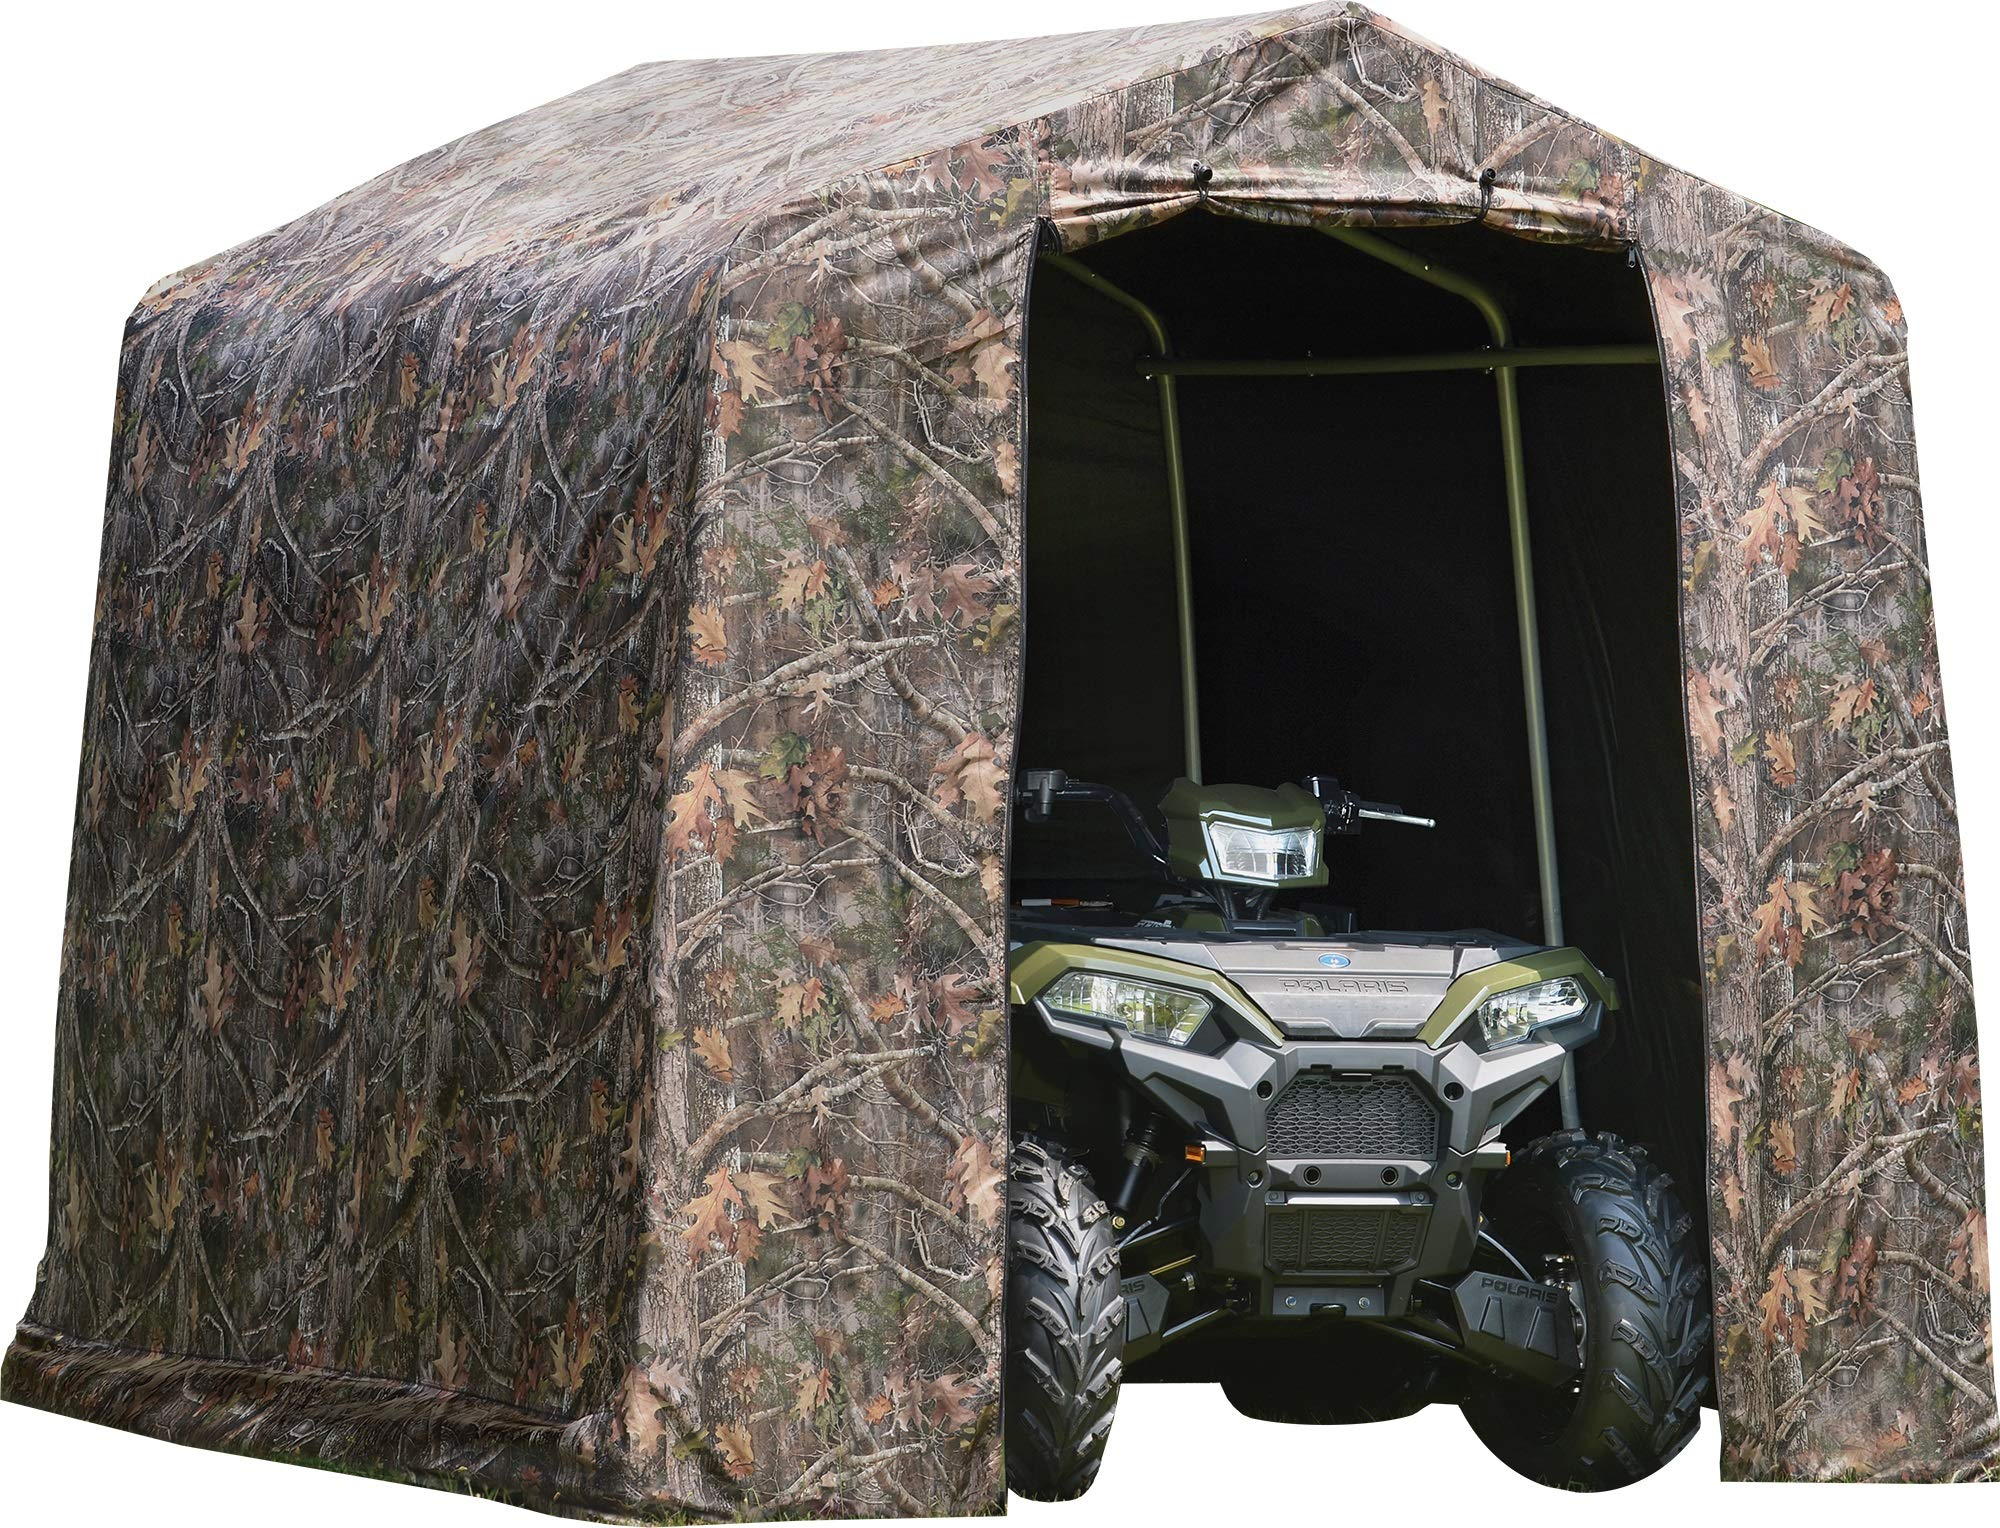 ShelterLogic 8' x 8' Shed-in-a-Box All Season Steel Metal Peak Roof Outdoor Storage Shed with Printed Camouflage Cover and Heavy Duty Reusable Auger Anchors by ShelterLogic